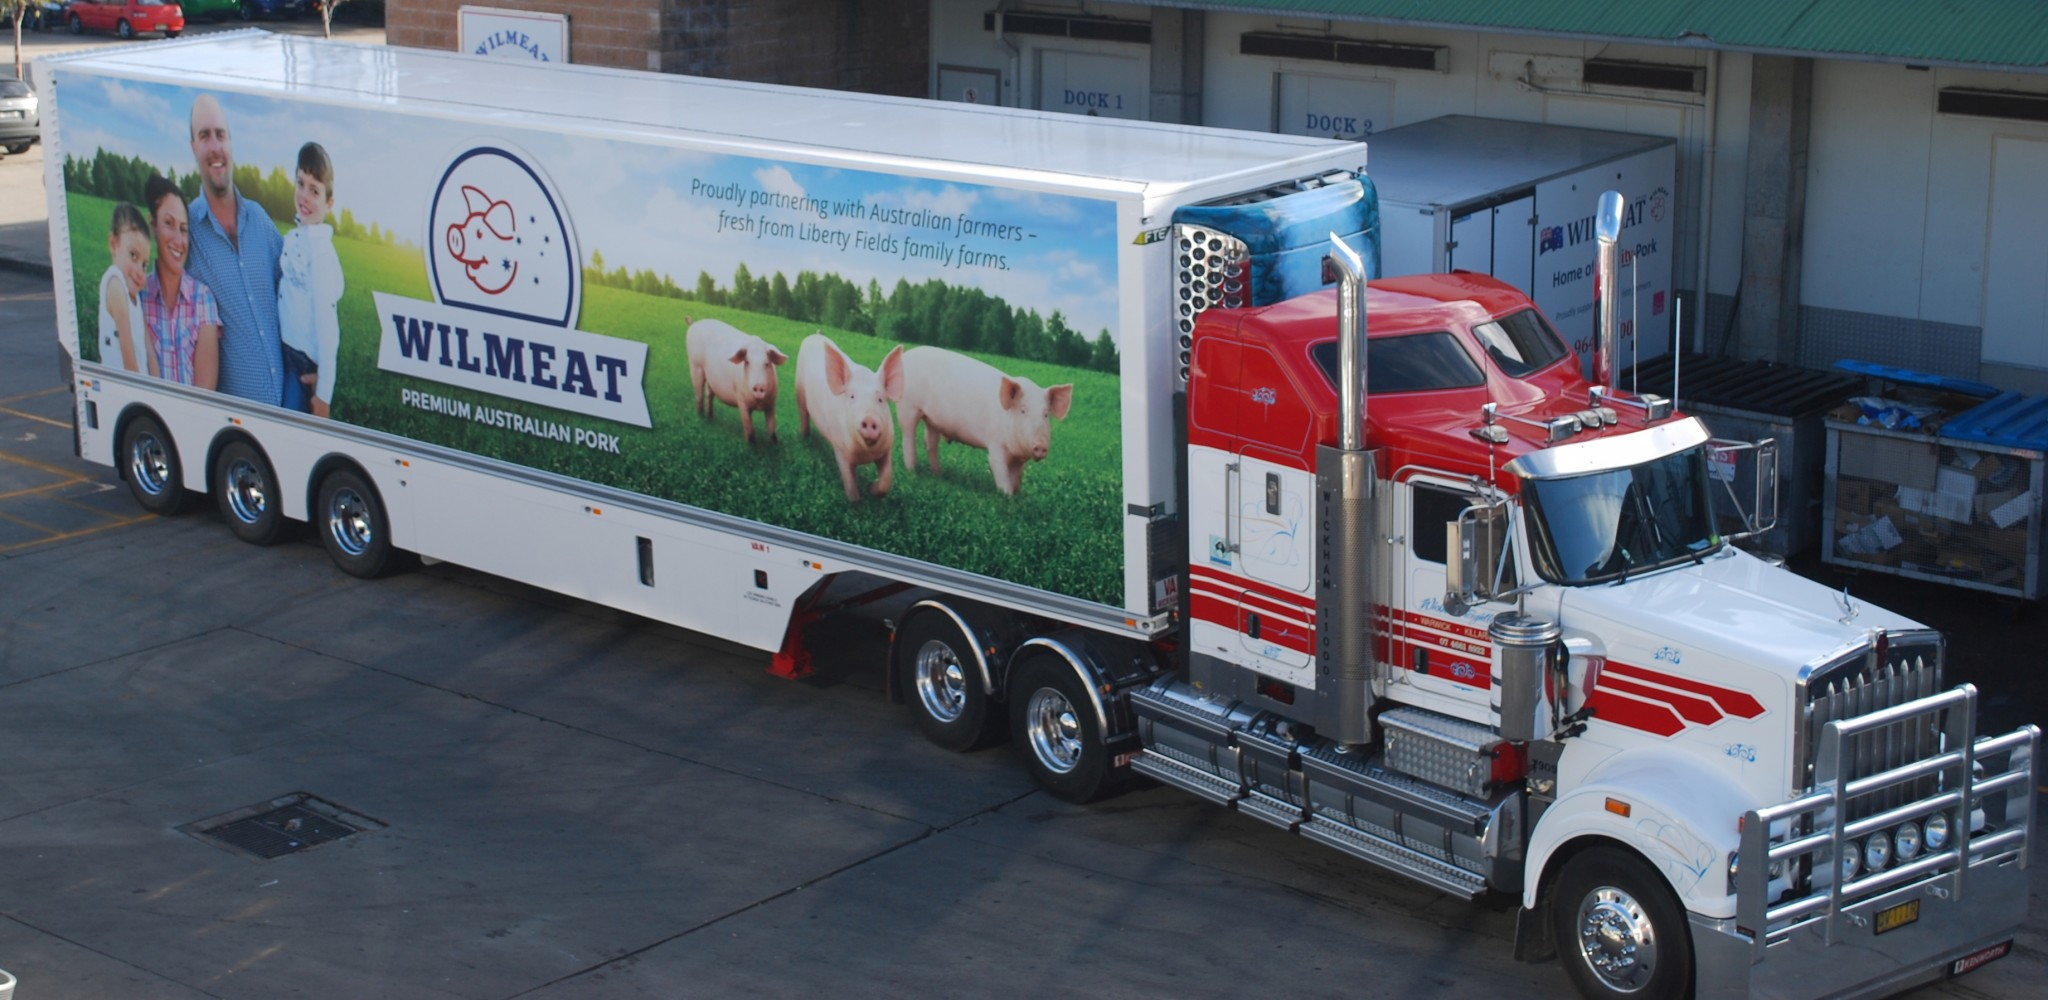 Wilmeat Cut Meats - refrigerated truck